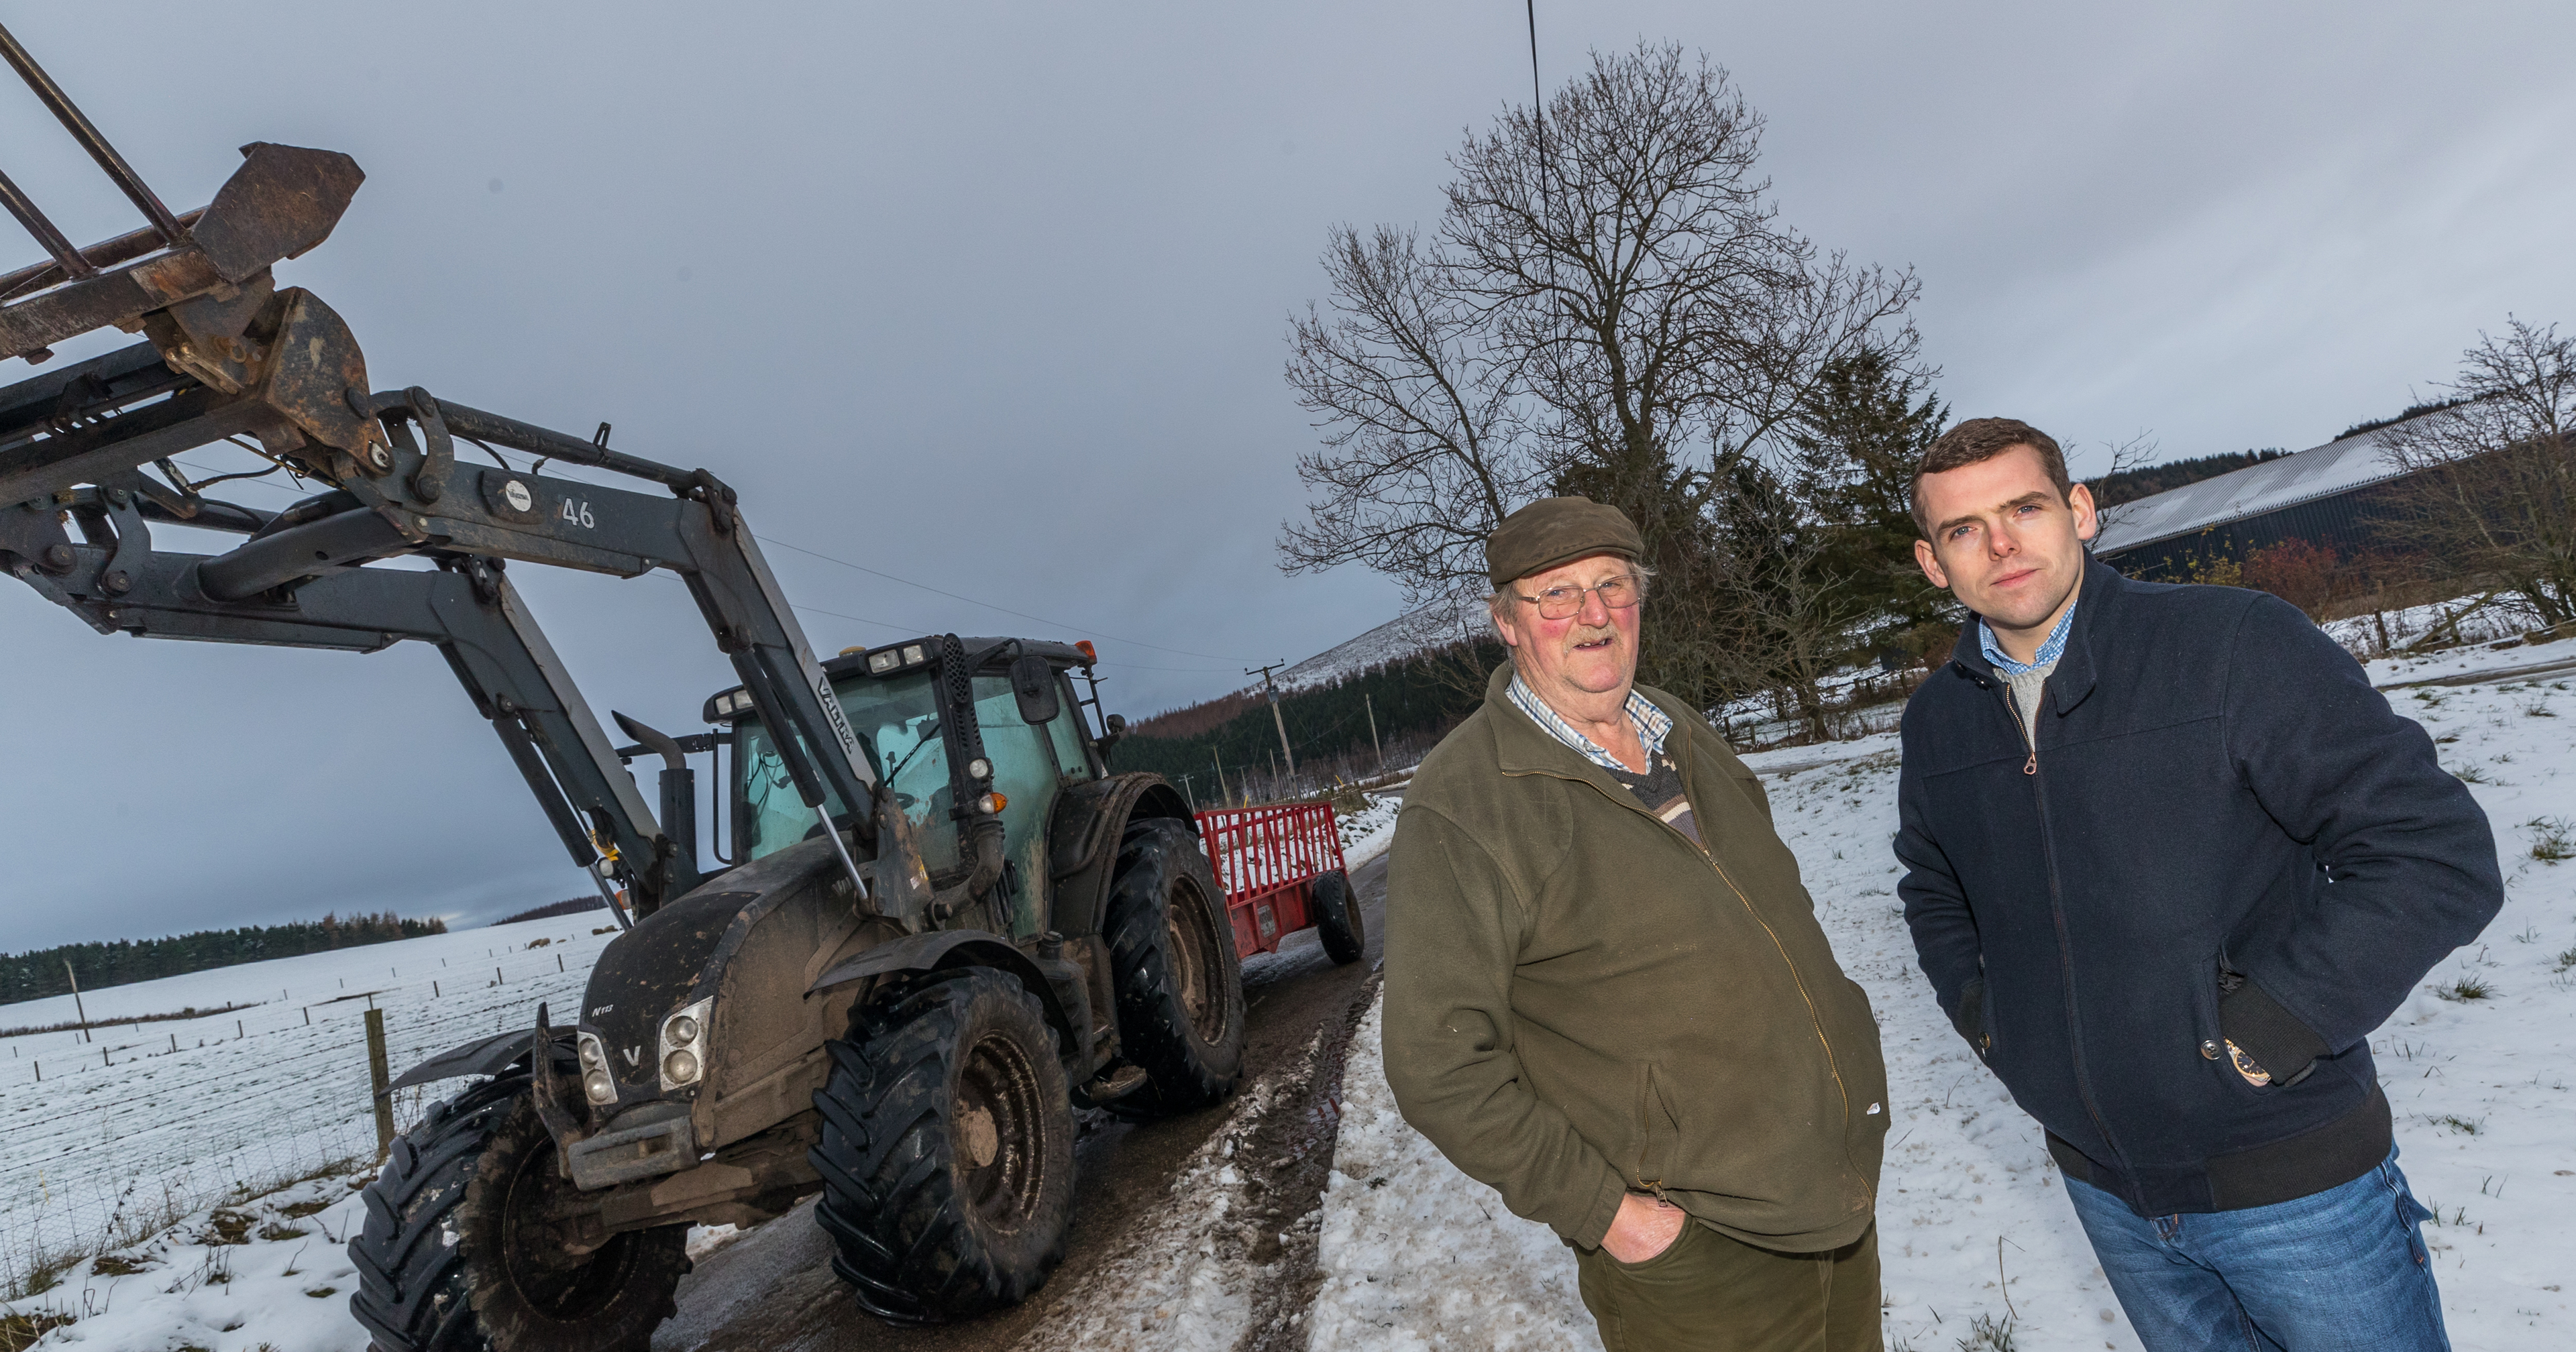 Glenlivet farmer Alastair Nairn, pictured left, fears he may have to use his tractor to help get children to school. Also pictured: Moray MP Douglas Ross.